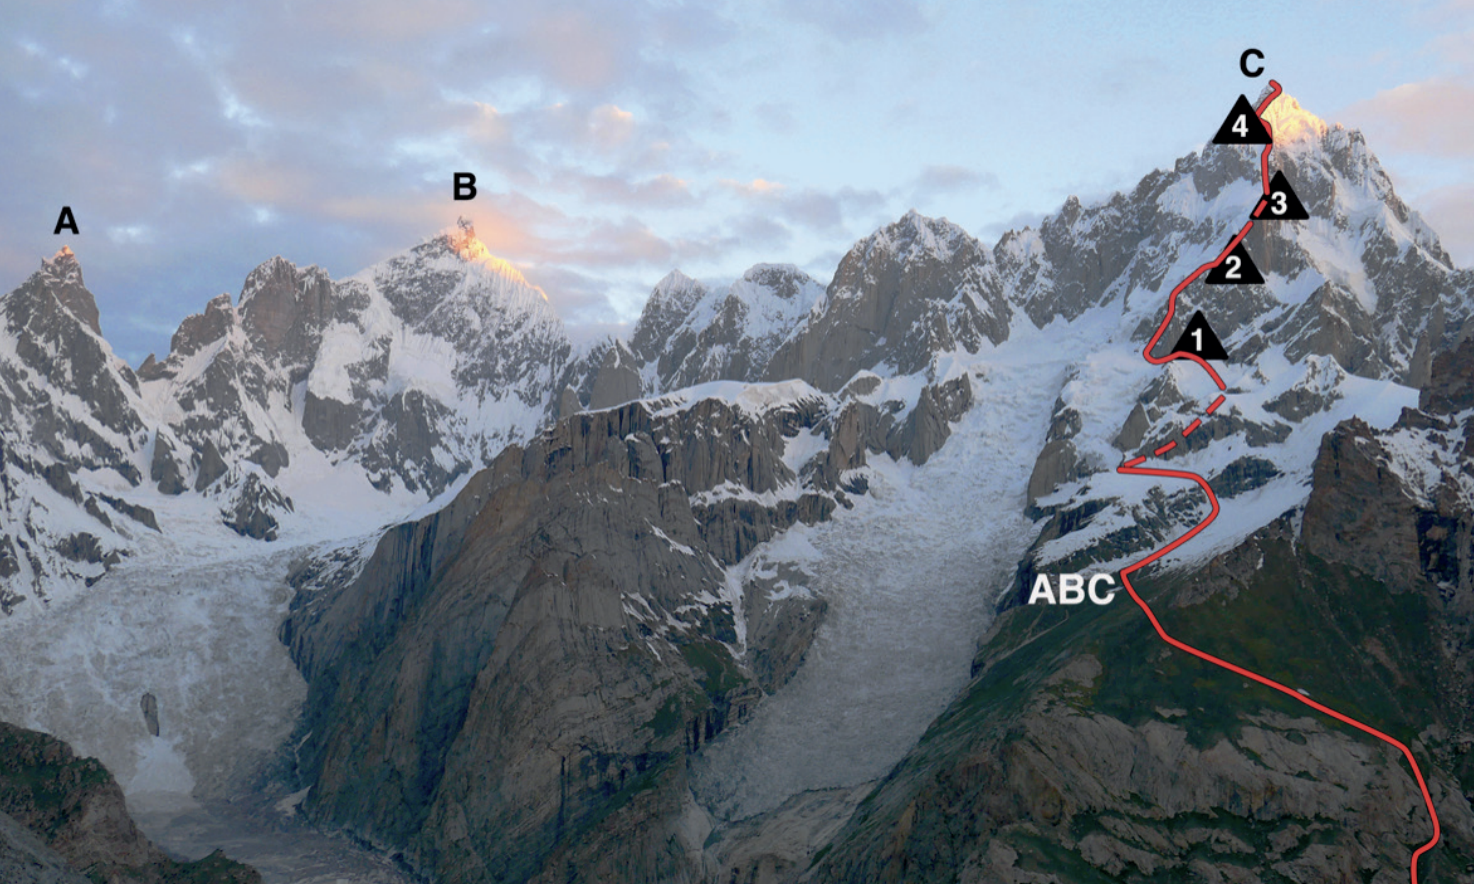 The first ascent of Link Sar is one of the climbs that will be honored at the 2020 Piolets d'Or.